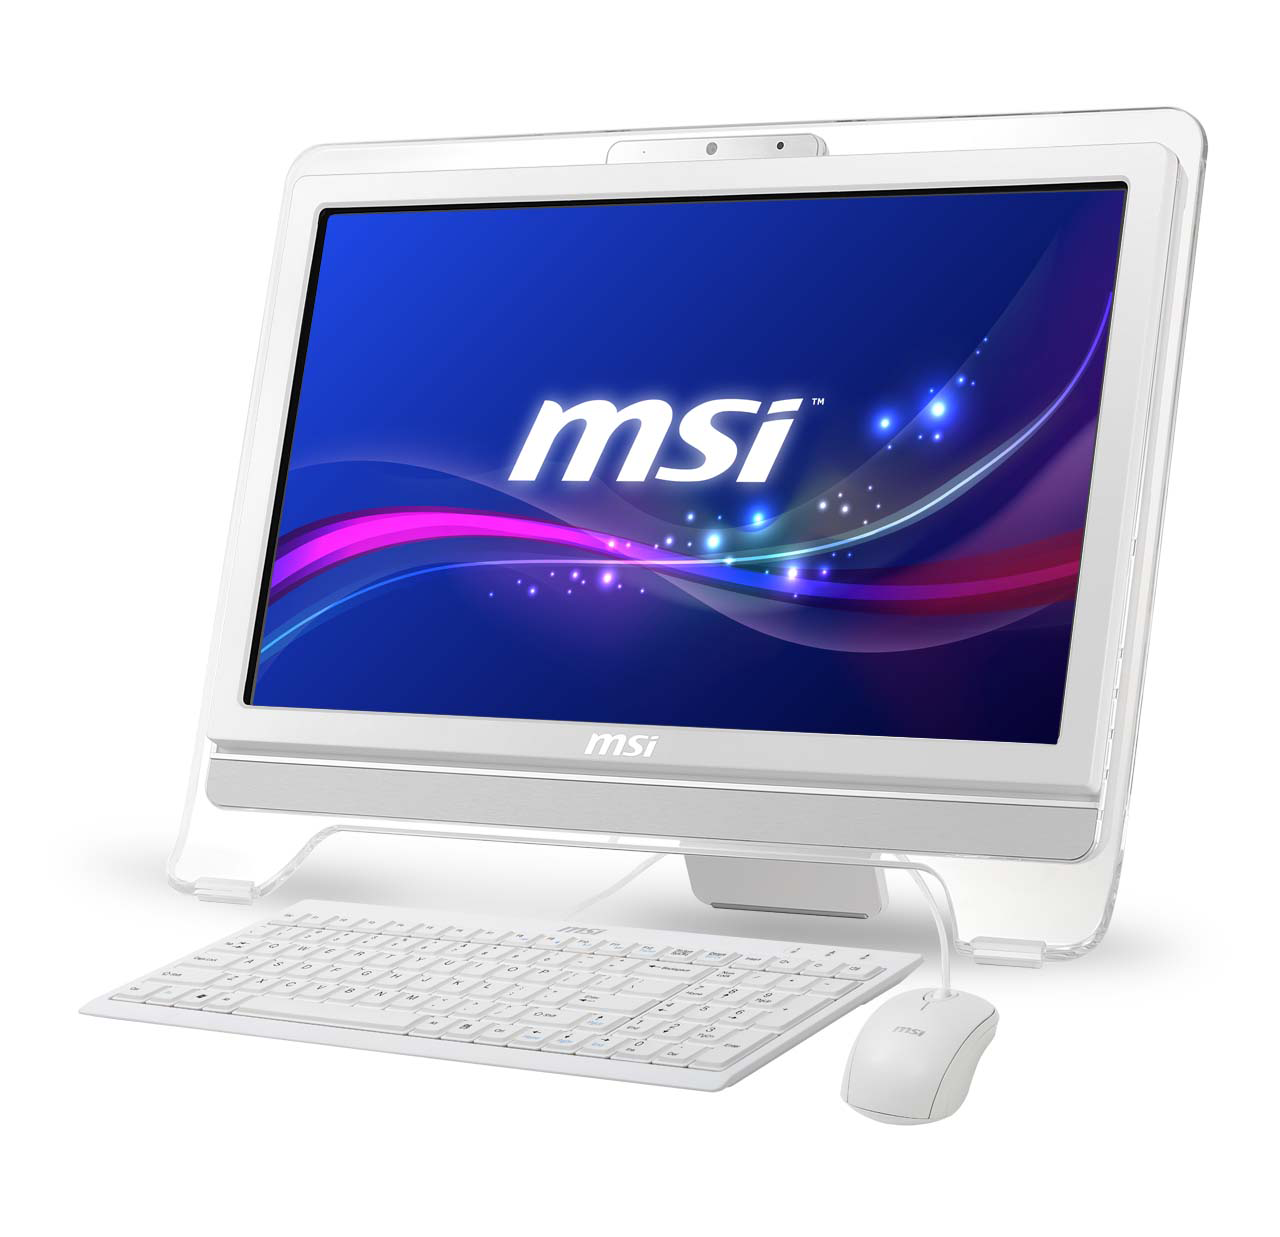 msi ae2081 deux pc tout en un avec core i3 geforce gt 630m et optimus. Black Bedroom Furniture Sets. Home Design Ideas